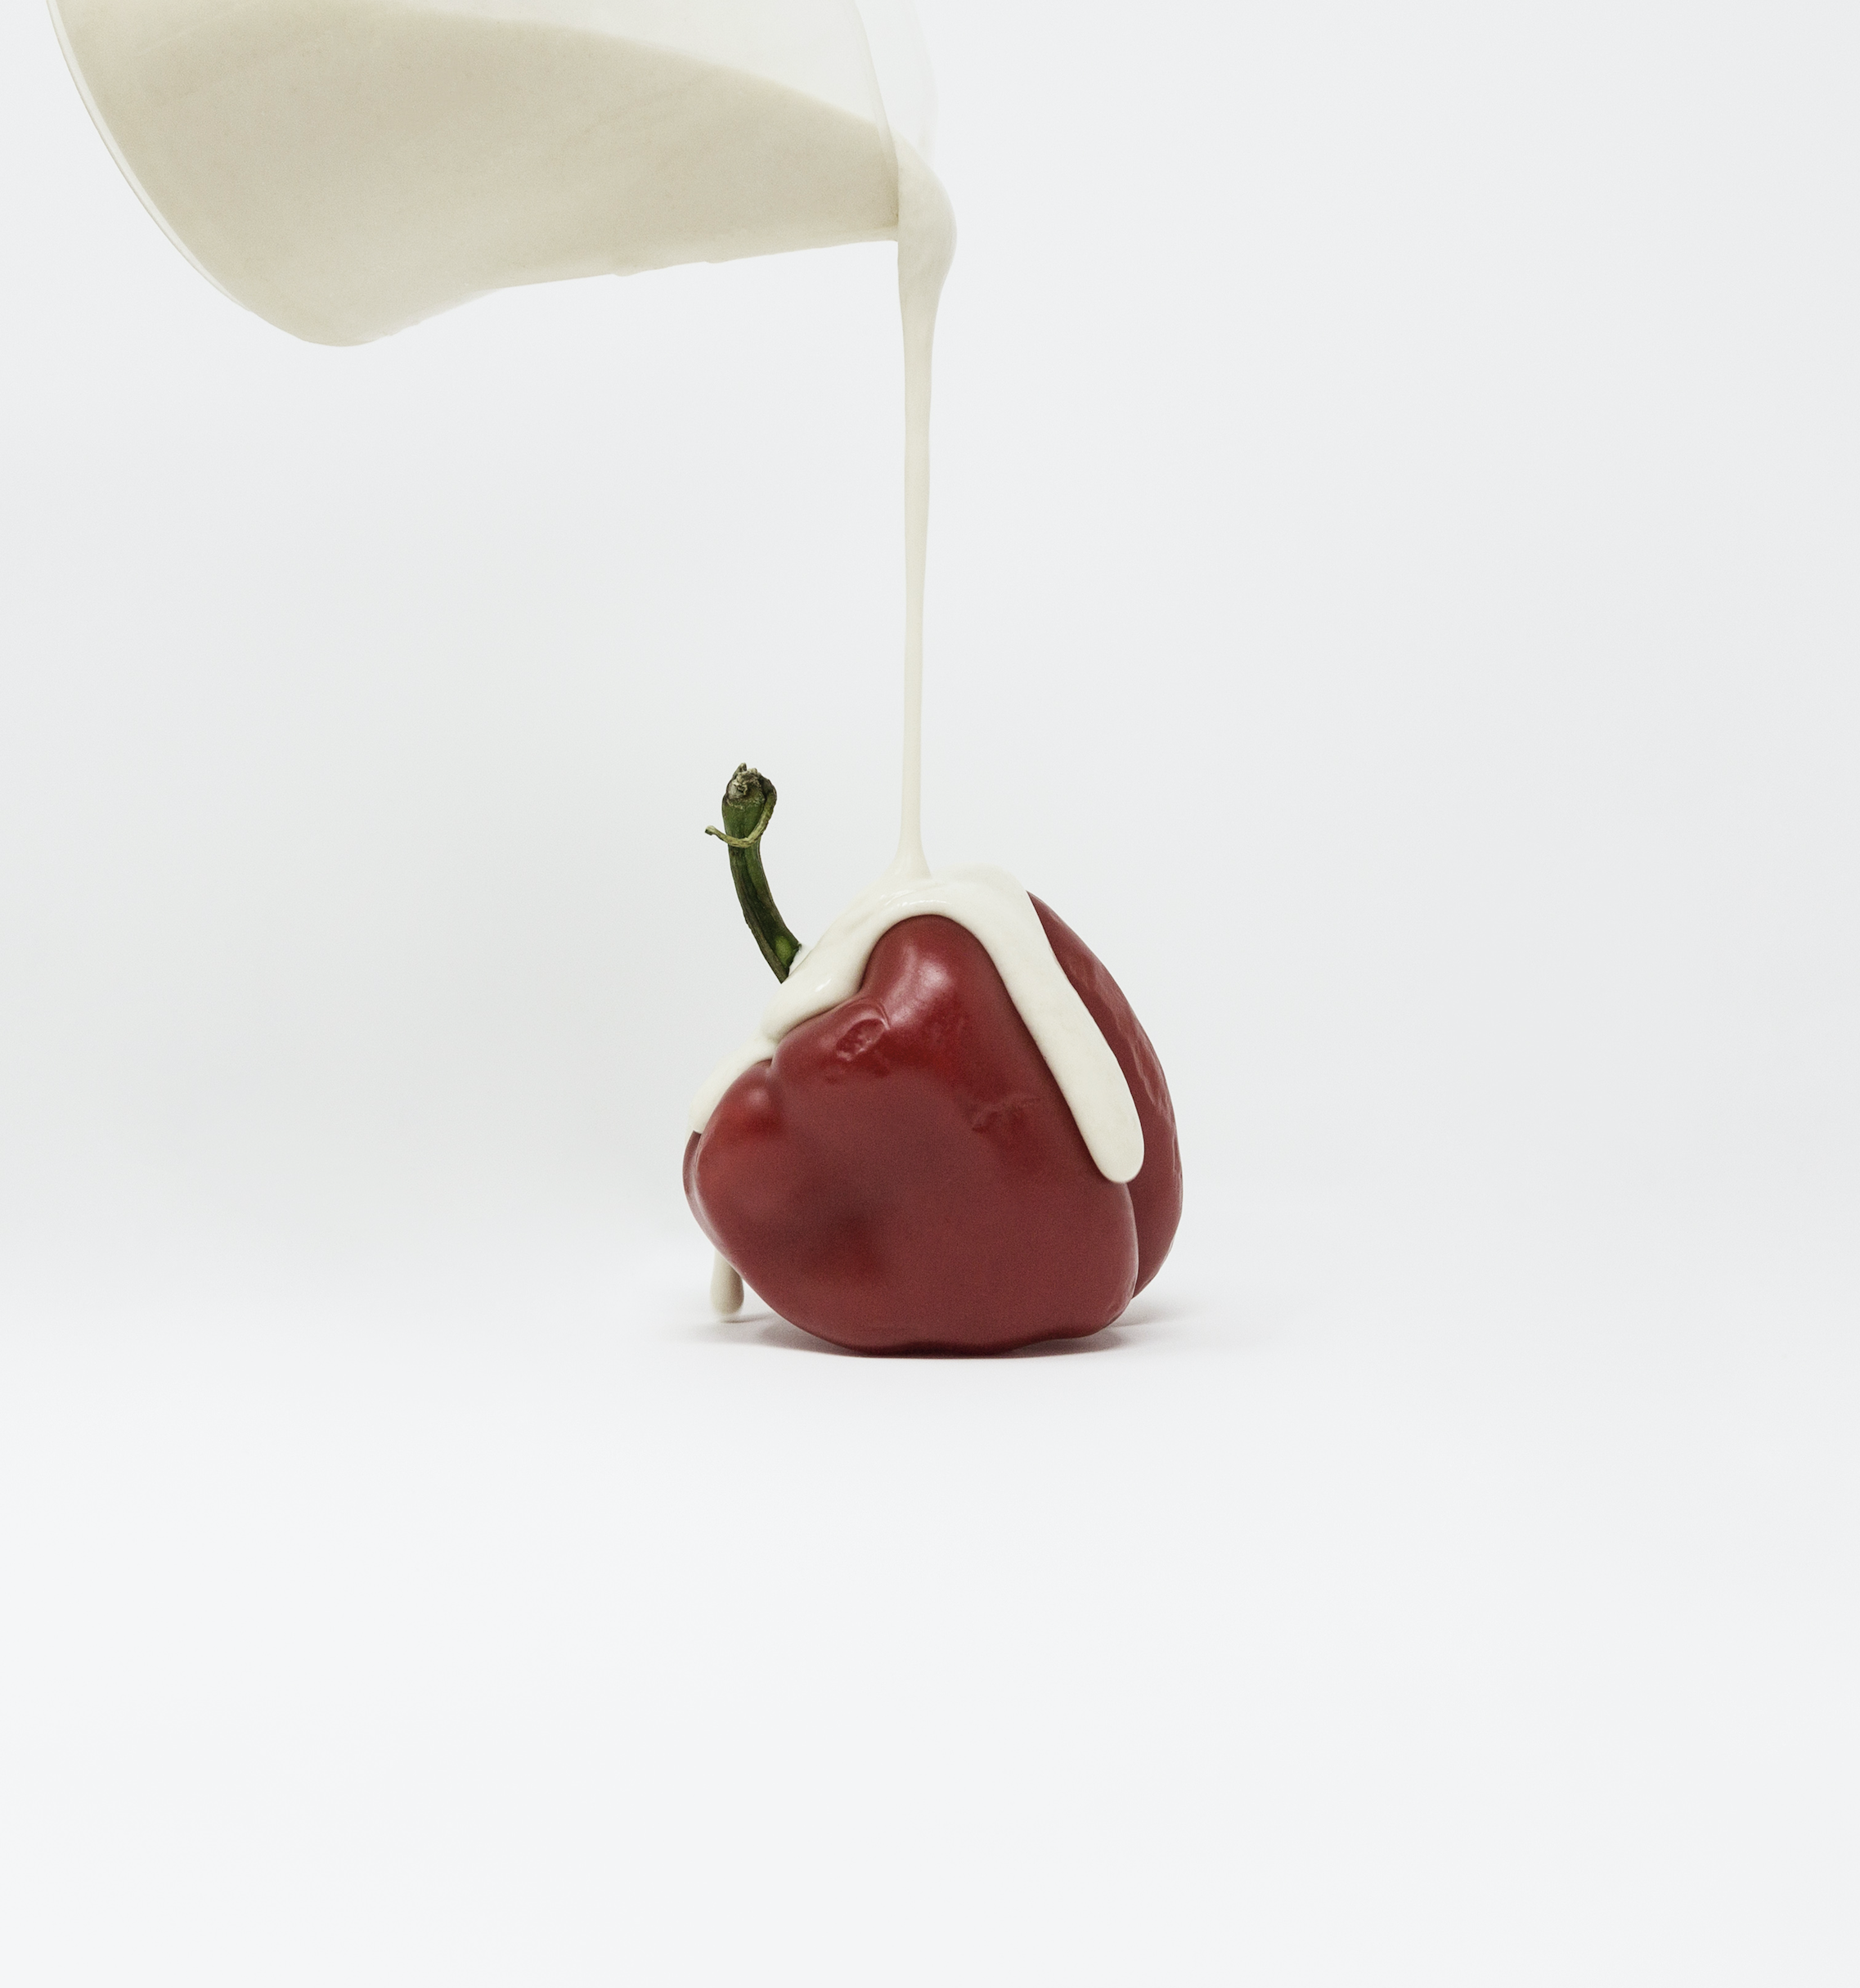 Minimalist, still life photograph of a vegetable covered in a paint-like substance highlighting the value of food, evoking the crucial reflection of the Global Food Crisis